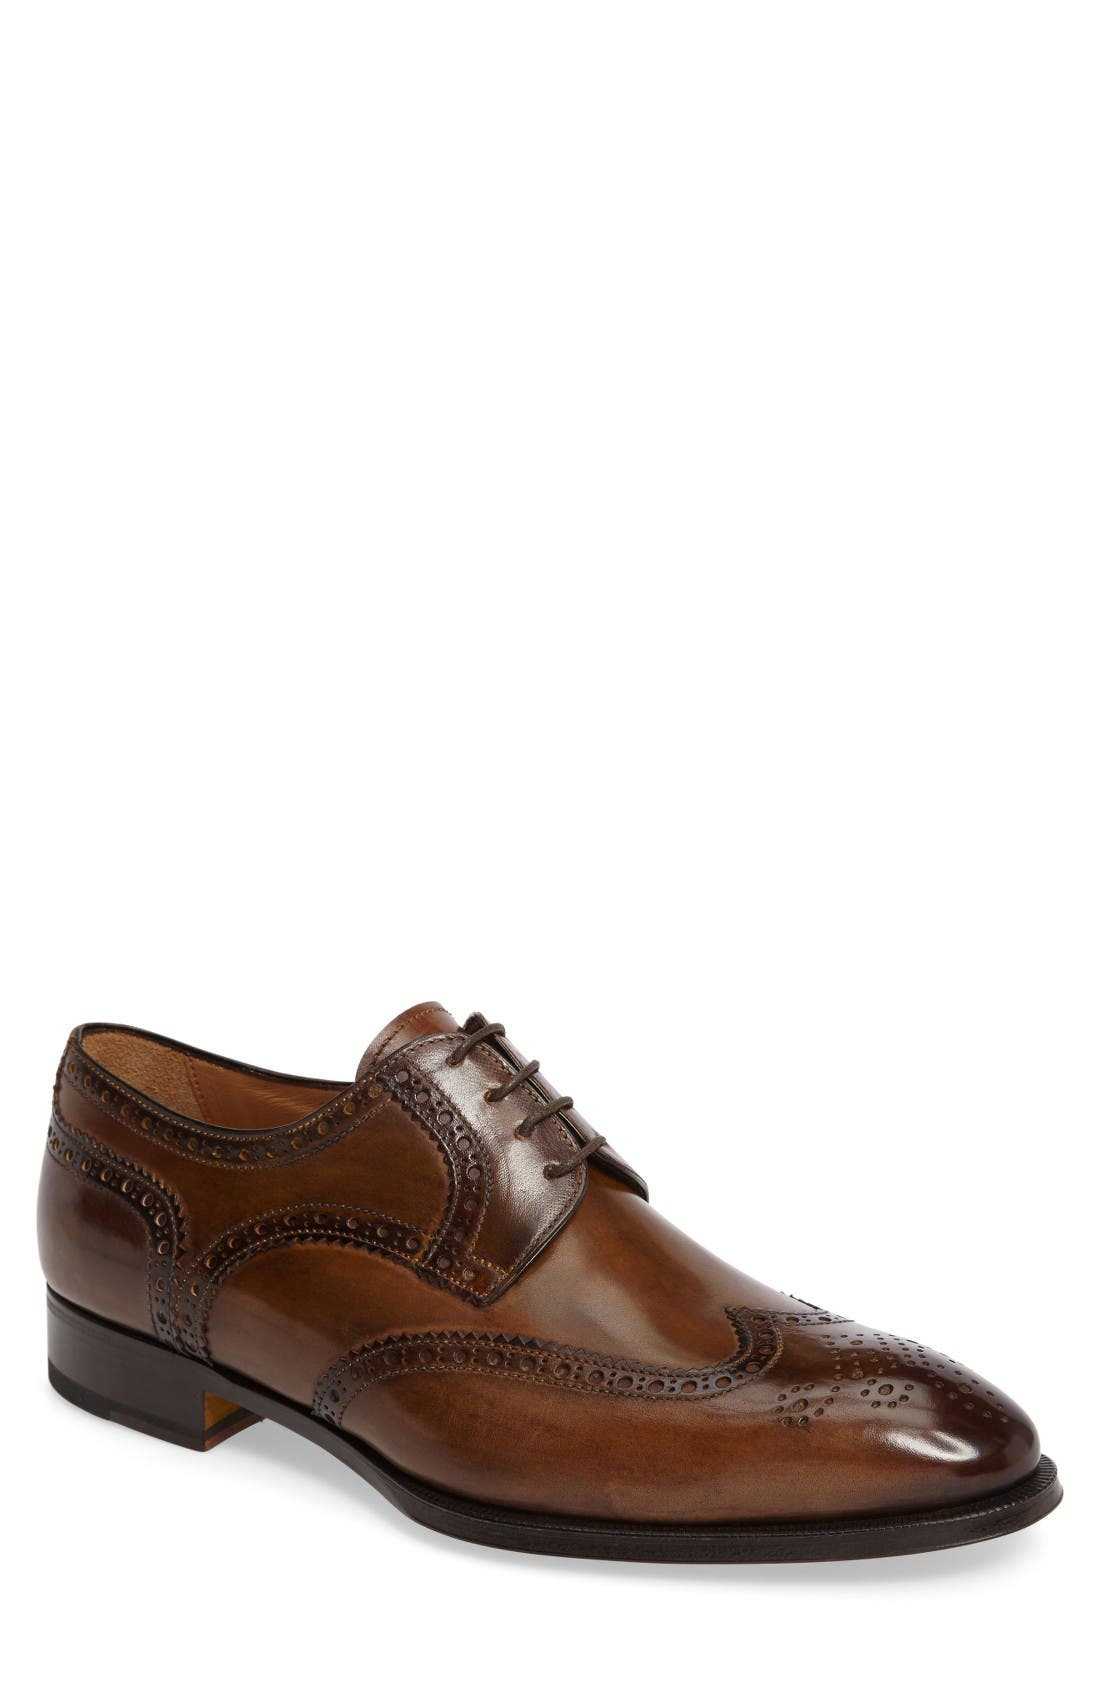 Di Bianco Gallo Blake Wingtip,                             Main thumbnail 1, color,                             Ginger